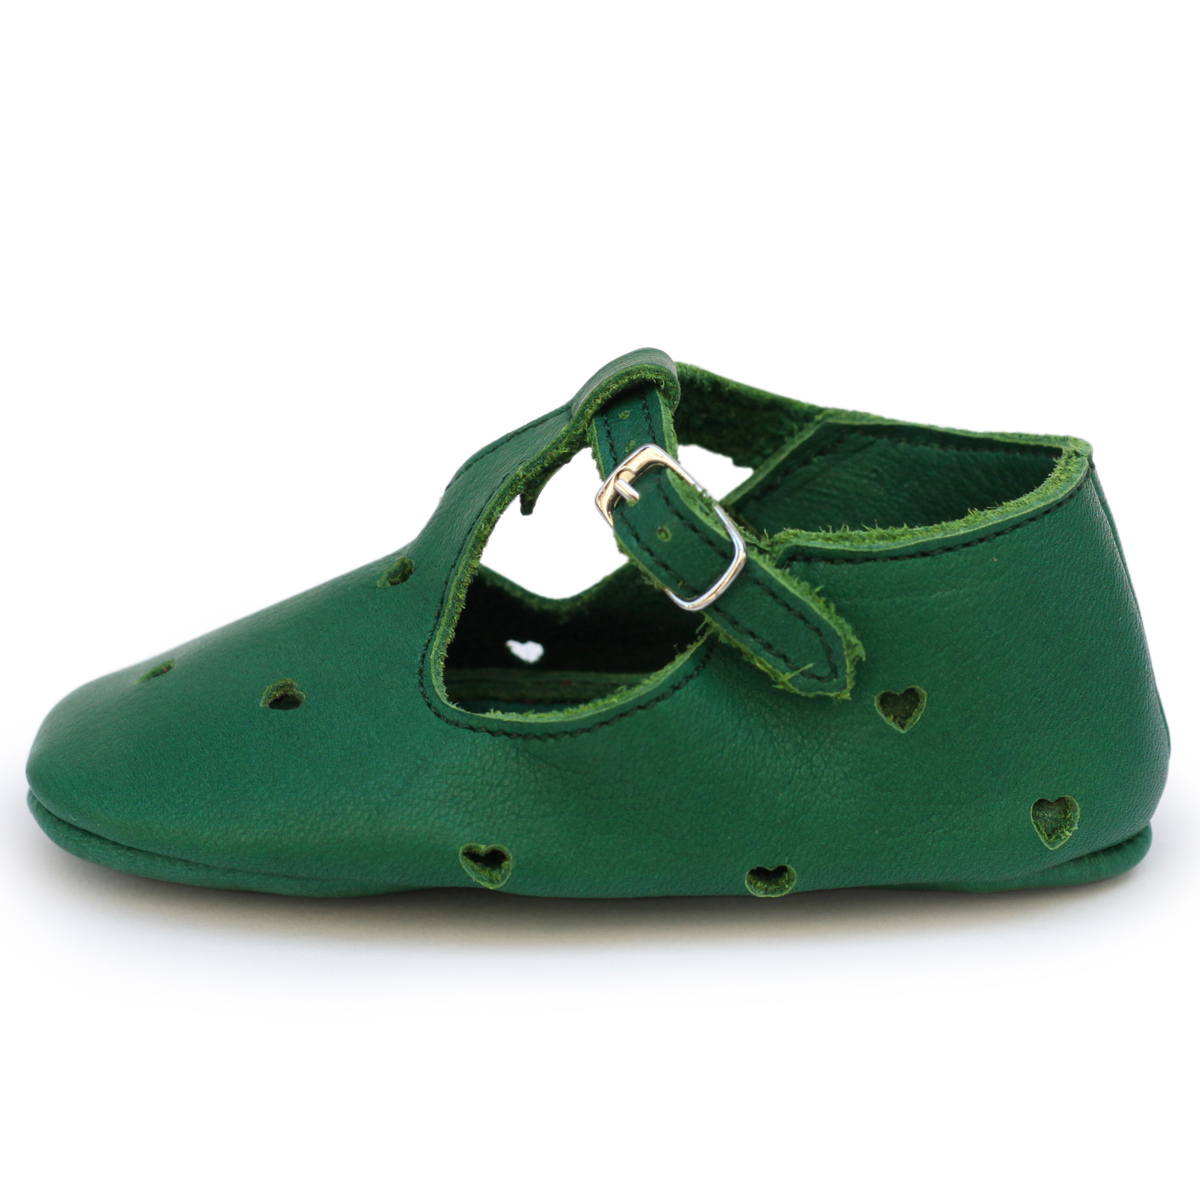 Chaussons & Chaussures Sandales Coeur 3/6 mois - Vert Prairie Sandales Coeur 3/6 mois - Vert Prairie